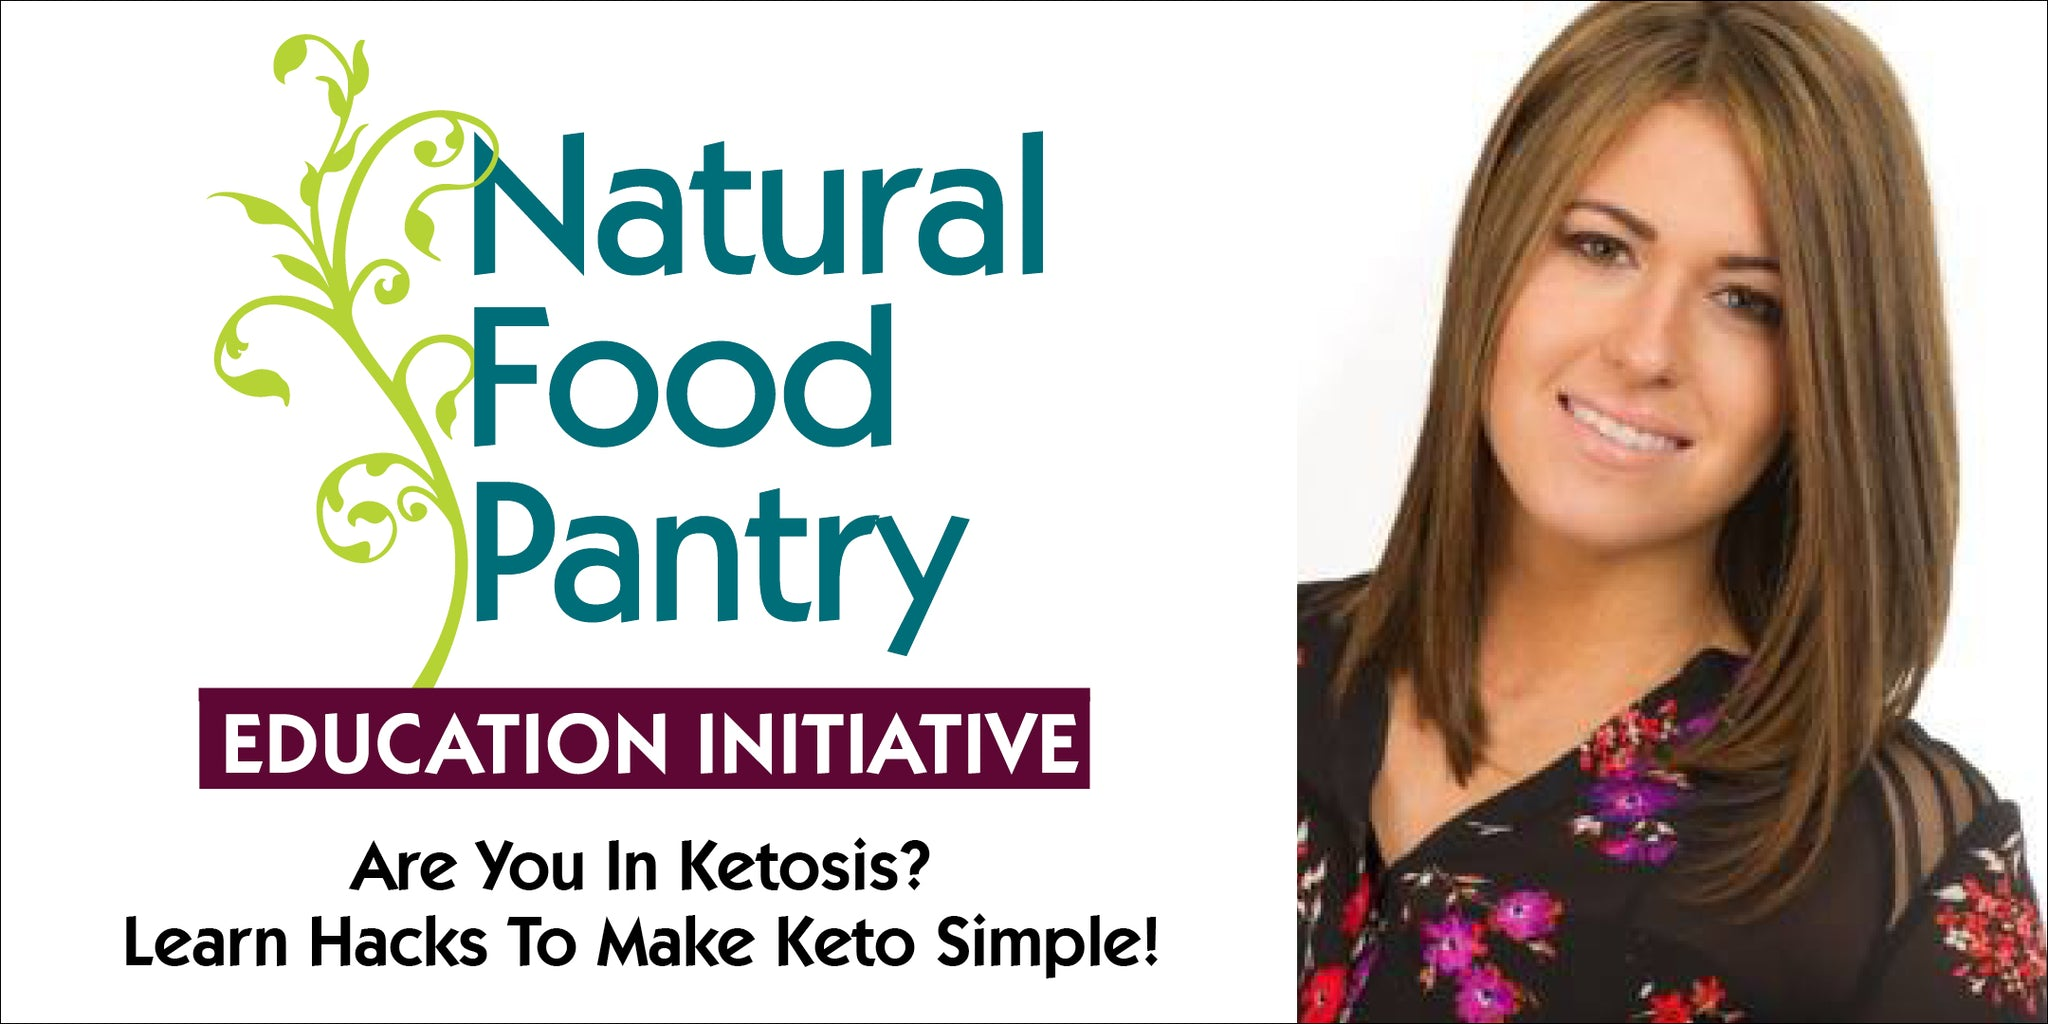 July 25: Are You In Ketosis? Learn Hacks To Make Keto Simple